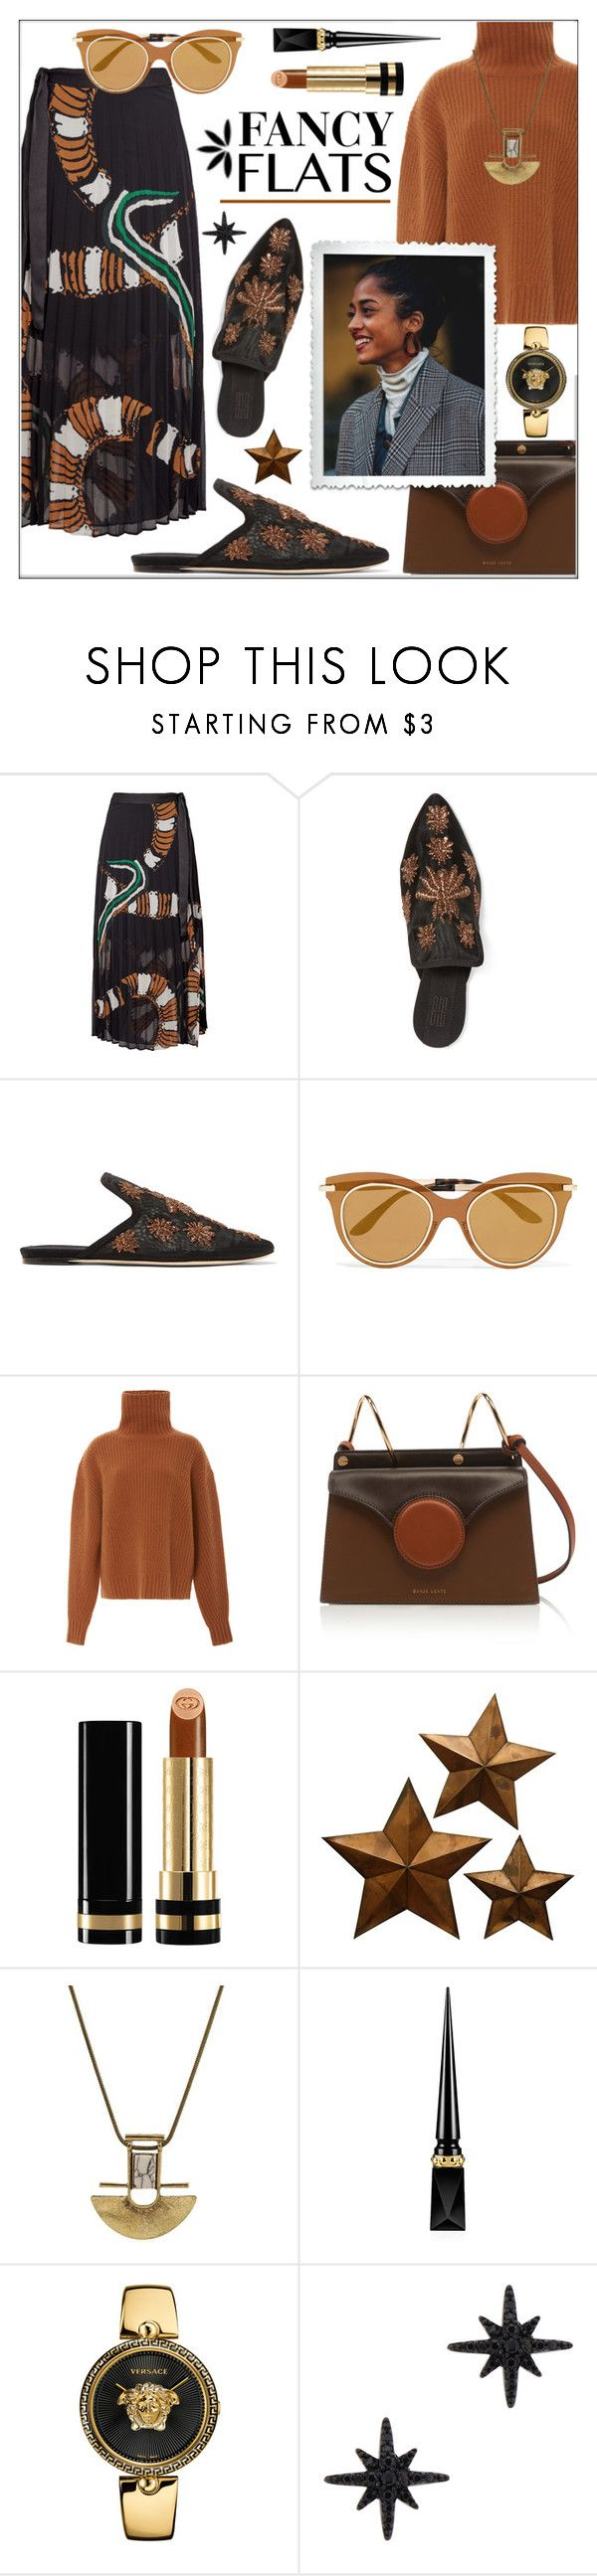 """Magic Slippers: Fancy Flats"" by pat912 ❤ liked on Polyvore featuring By Malene Birger, Sanayi 313, Dolce&Gabbana, Sally Lapointe, Gucci, Christian Louboutin, Versace, APM Monaco, polyvoreeditorial and fancyflats"